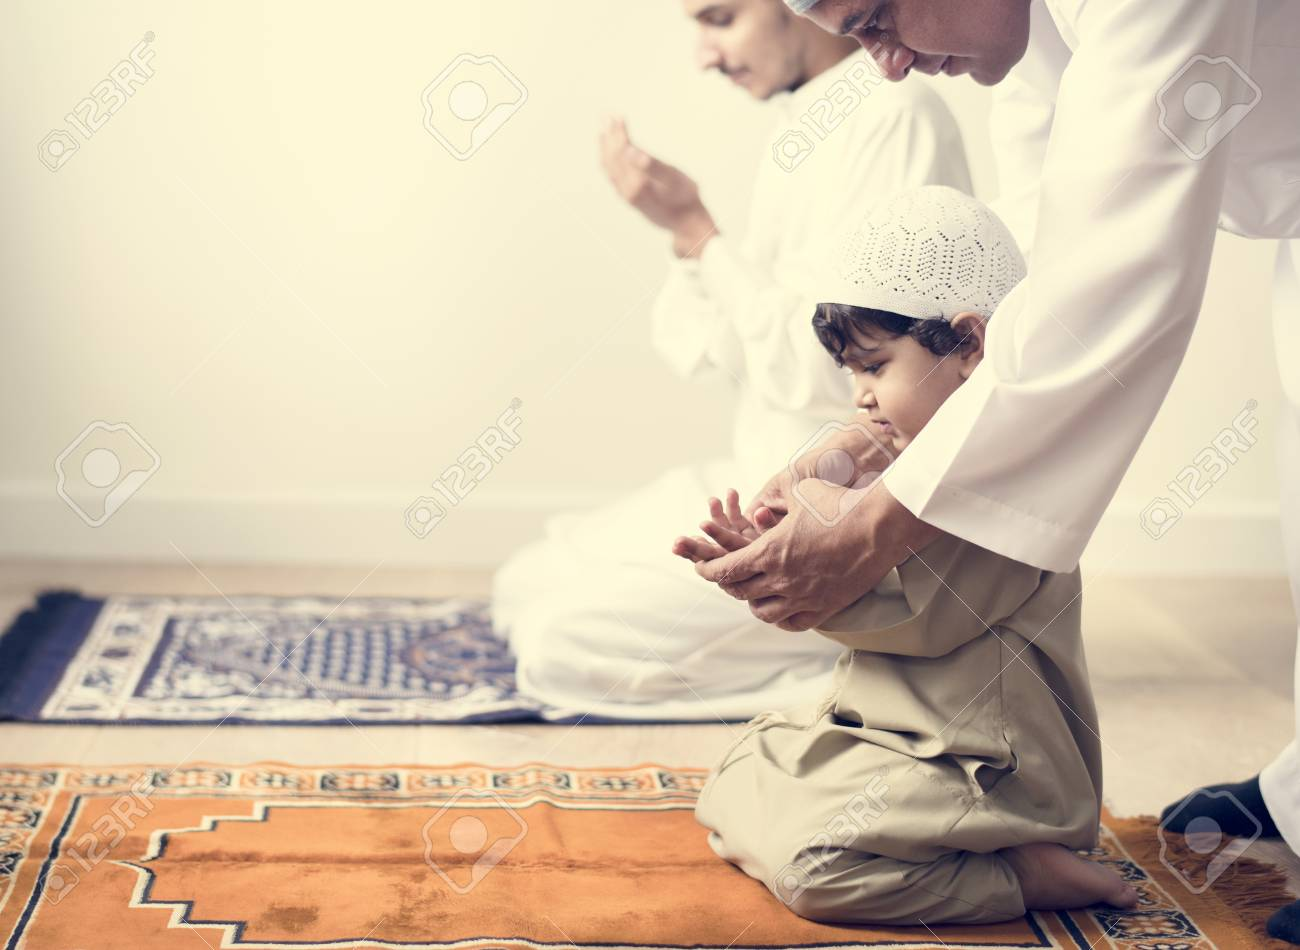 Muslim boy learning how to make Dua to Allah - 102863697